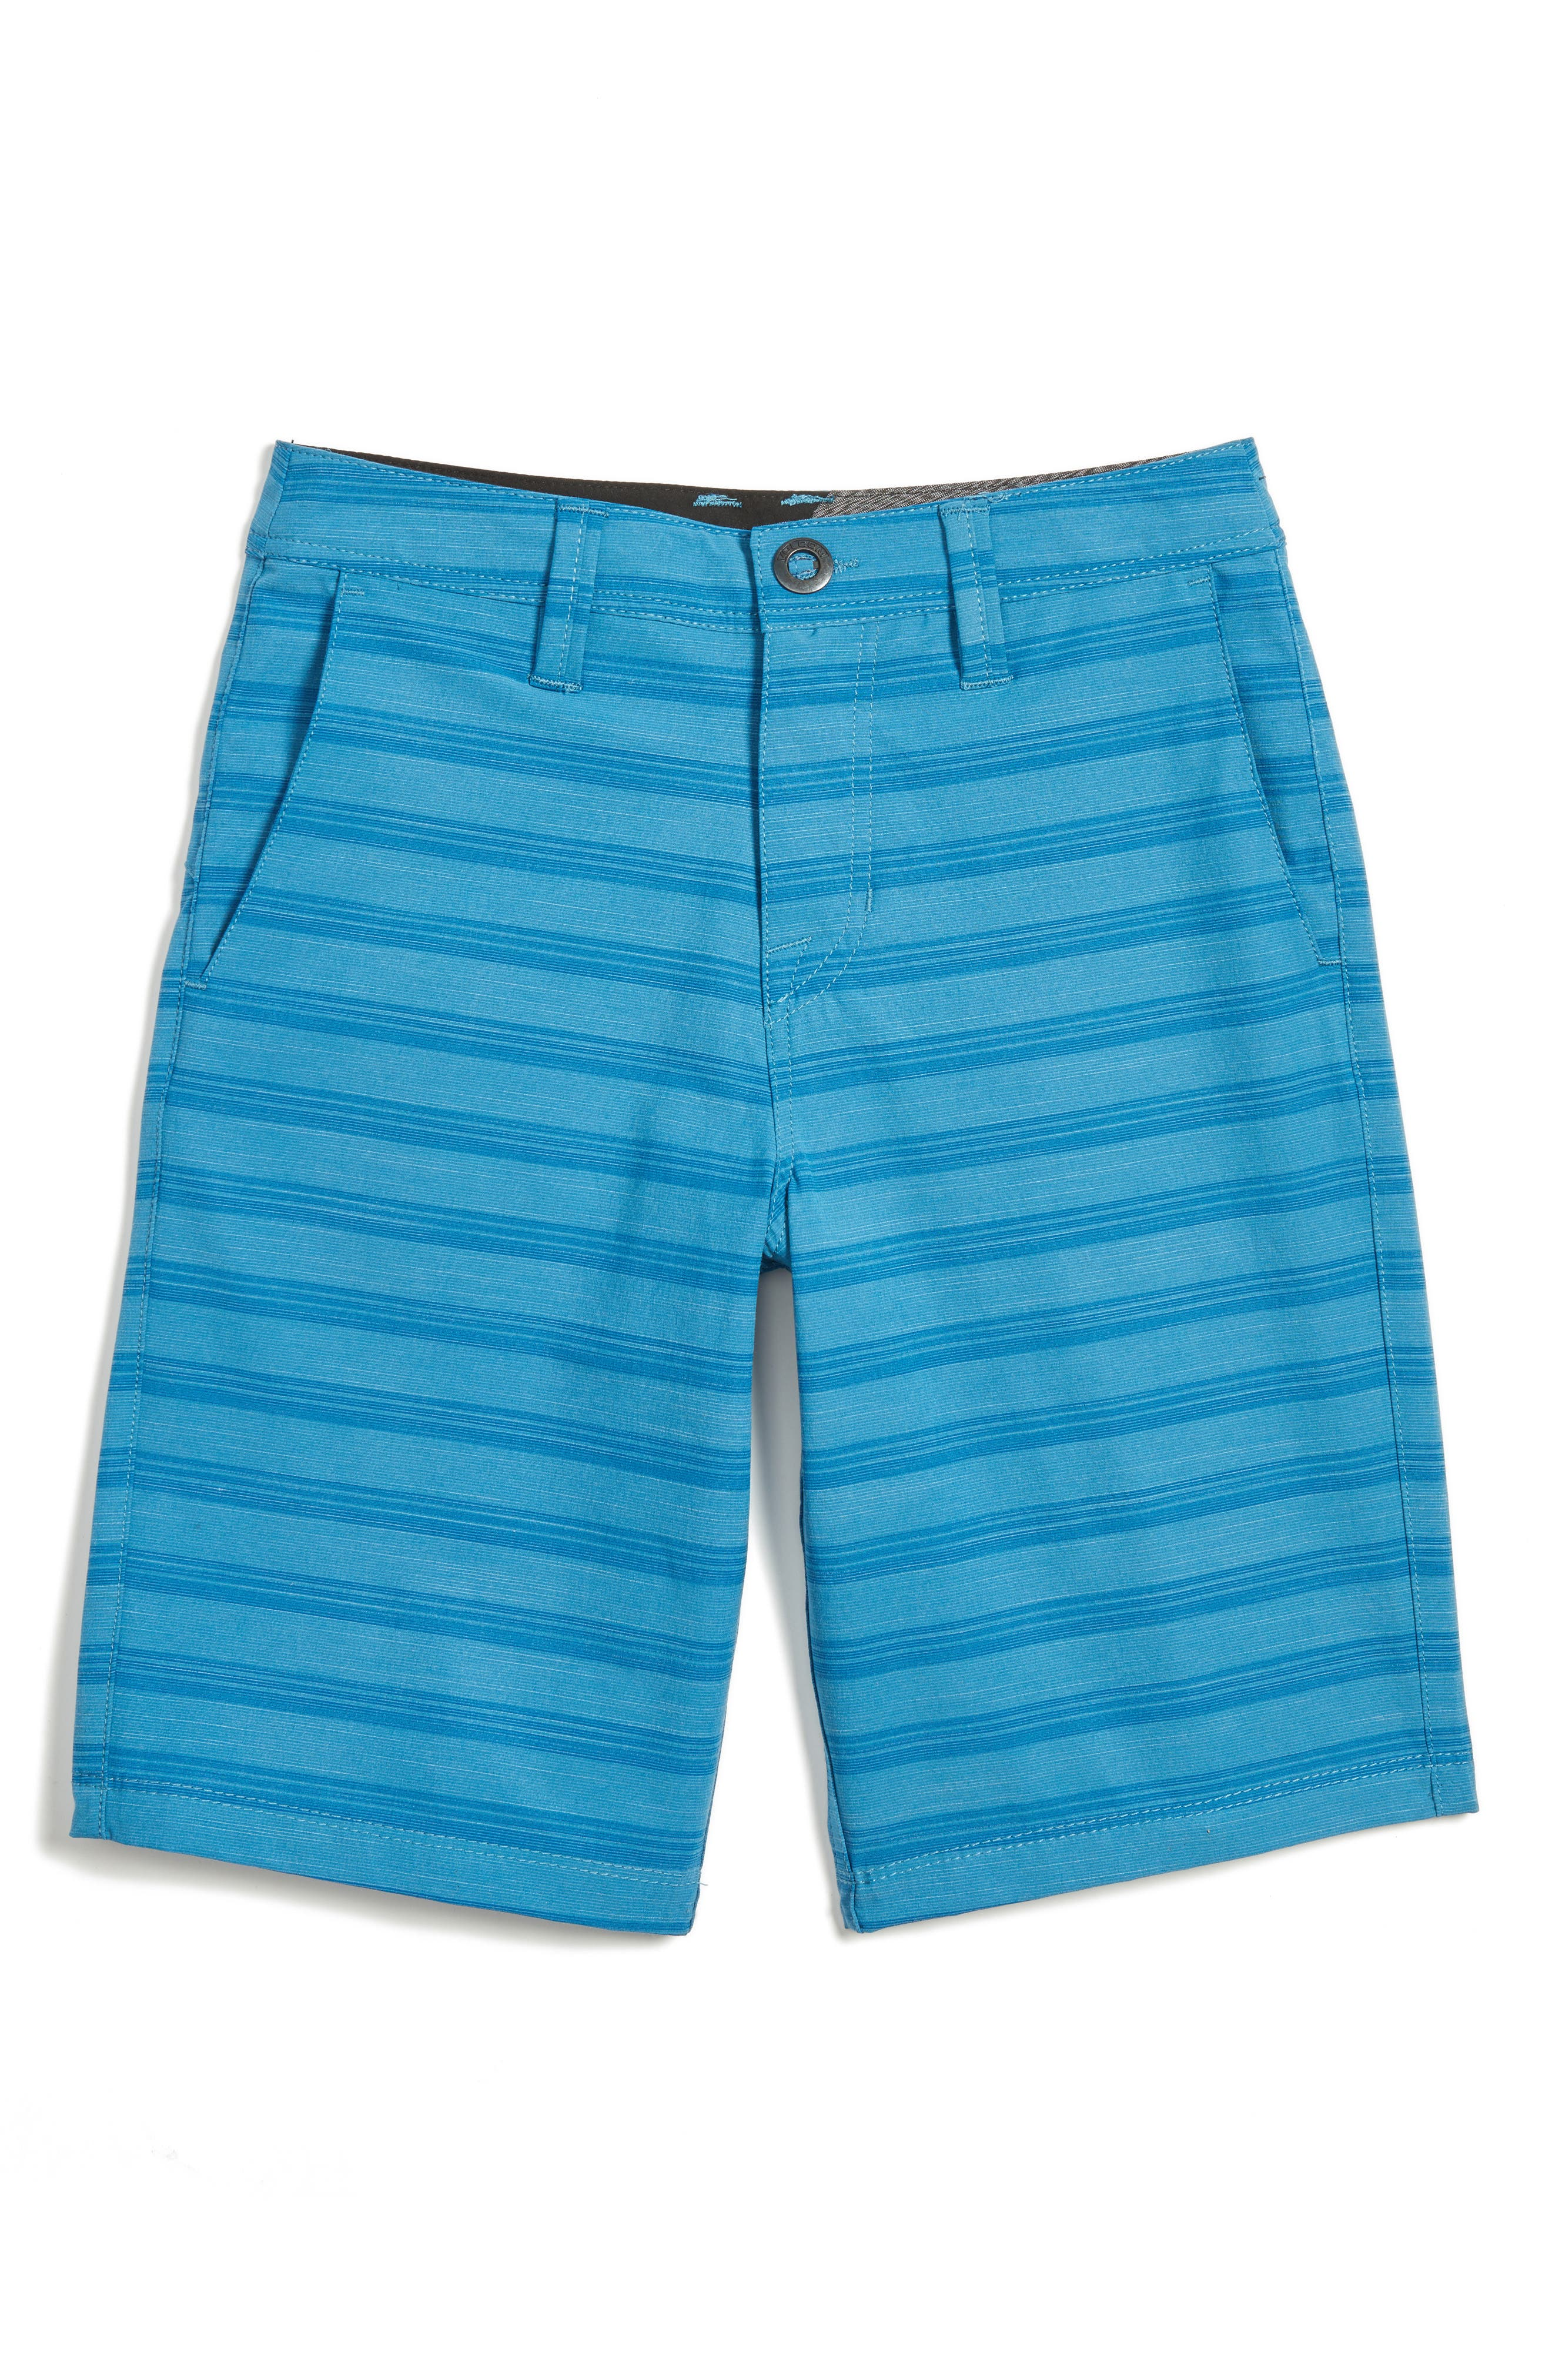 Alternate Image 1 Selected - Volcom Surf N' Turf Hybrid Shorts (Big Boys)